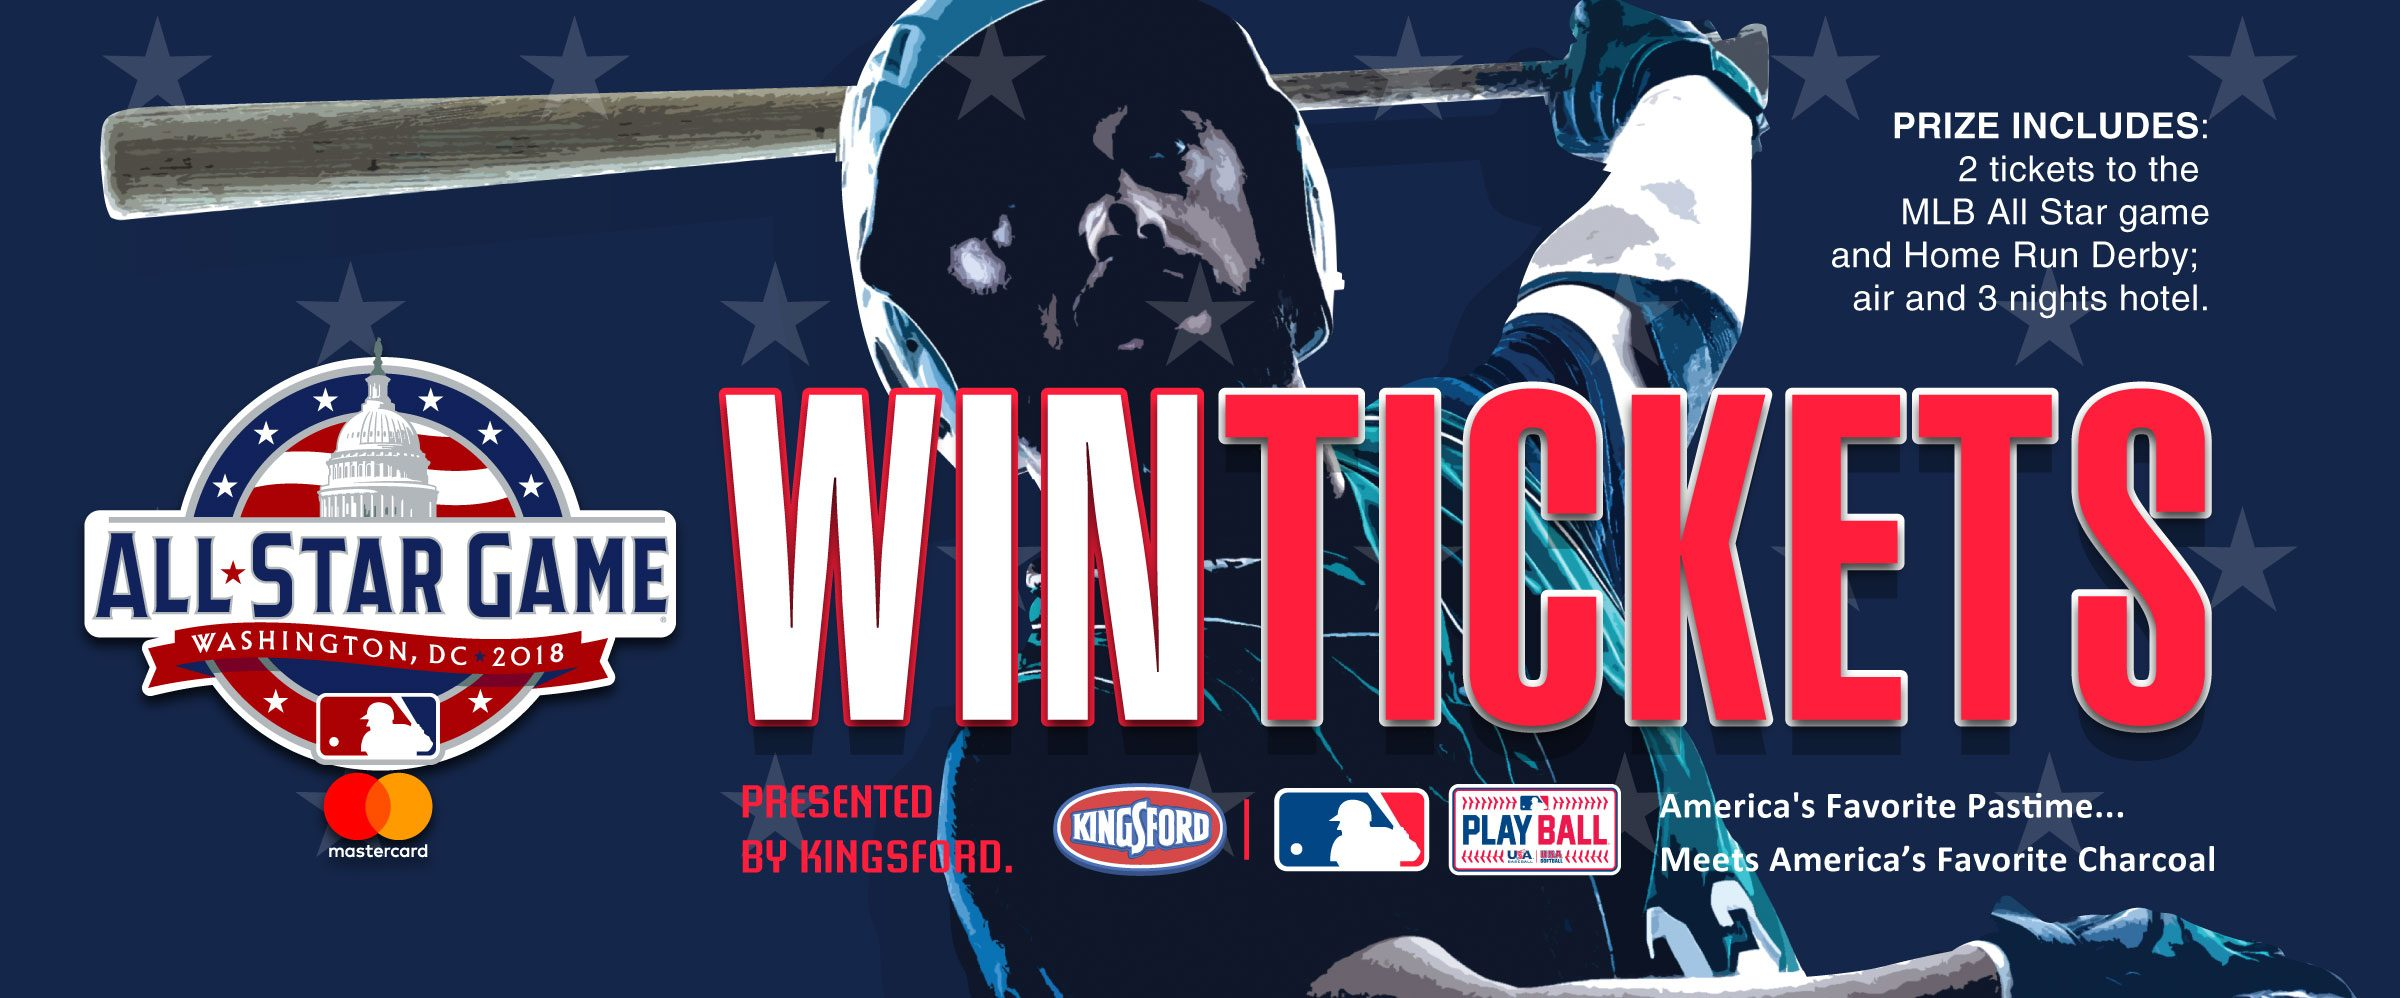 Register to win May 2-22, two tickets to the July 17, 2018 MLB All Star Game at Nationals Park, Washington, DC. Includes 2 tickets to the MLB All Star Game, Home Run Derby, air and 3 nights hotel. Presented by Kingsford Charcoal.